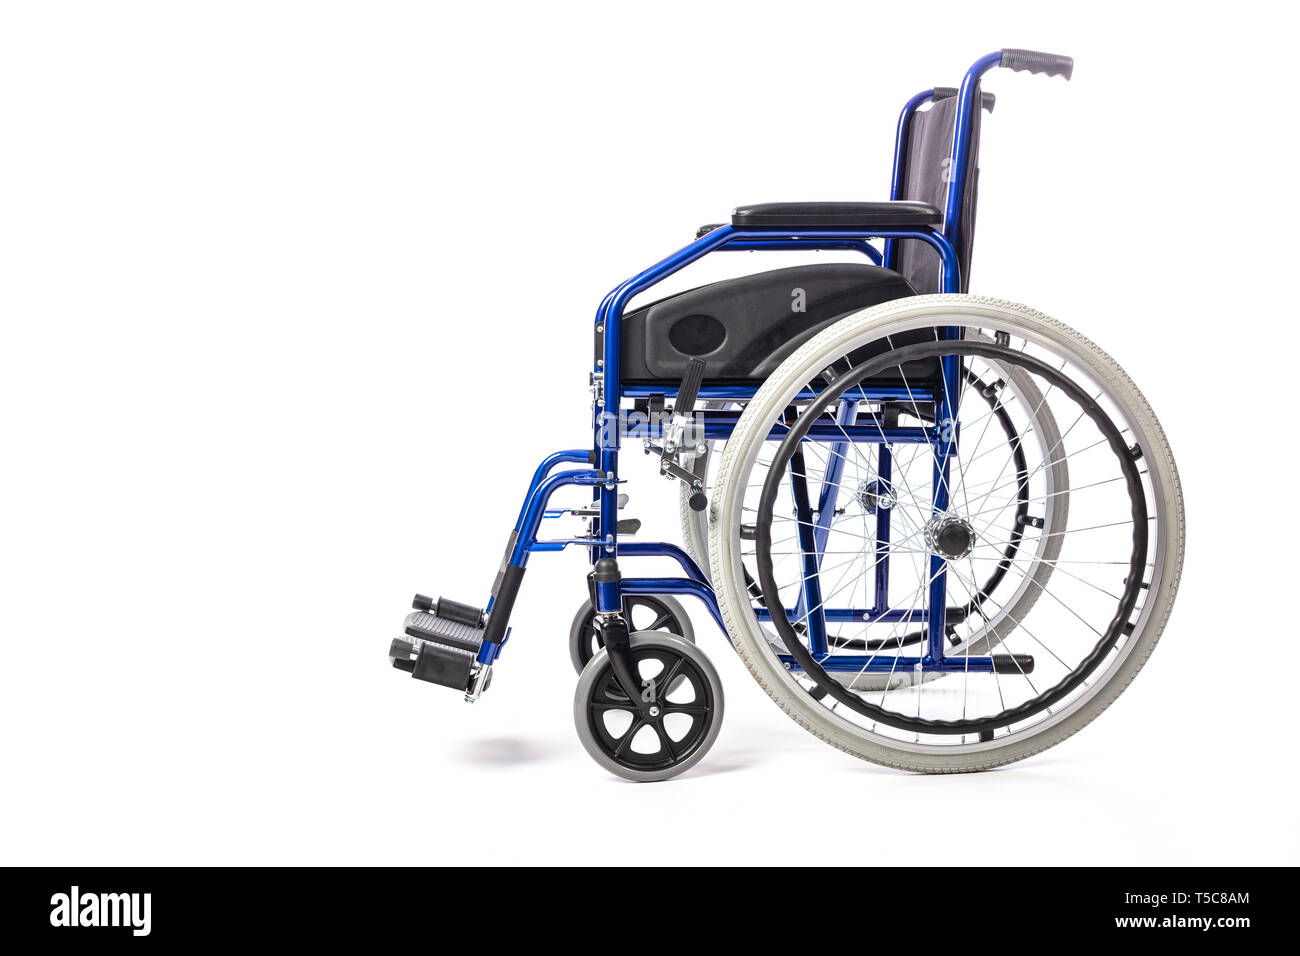 Detail of a classic wheelchair for physical disability on a white background. Concept of hospital care and disability, side view - Stock Image